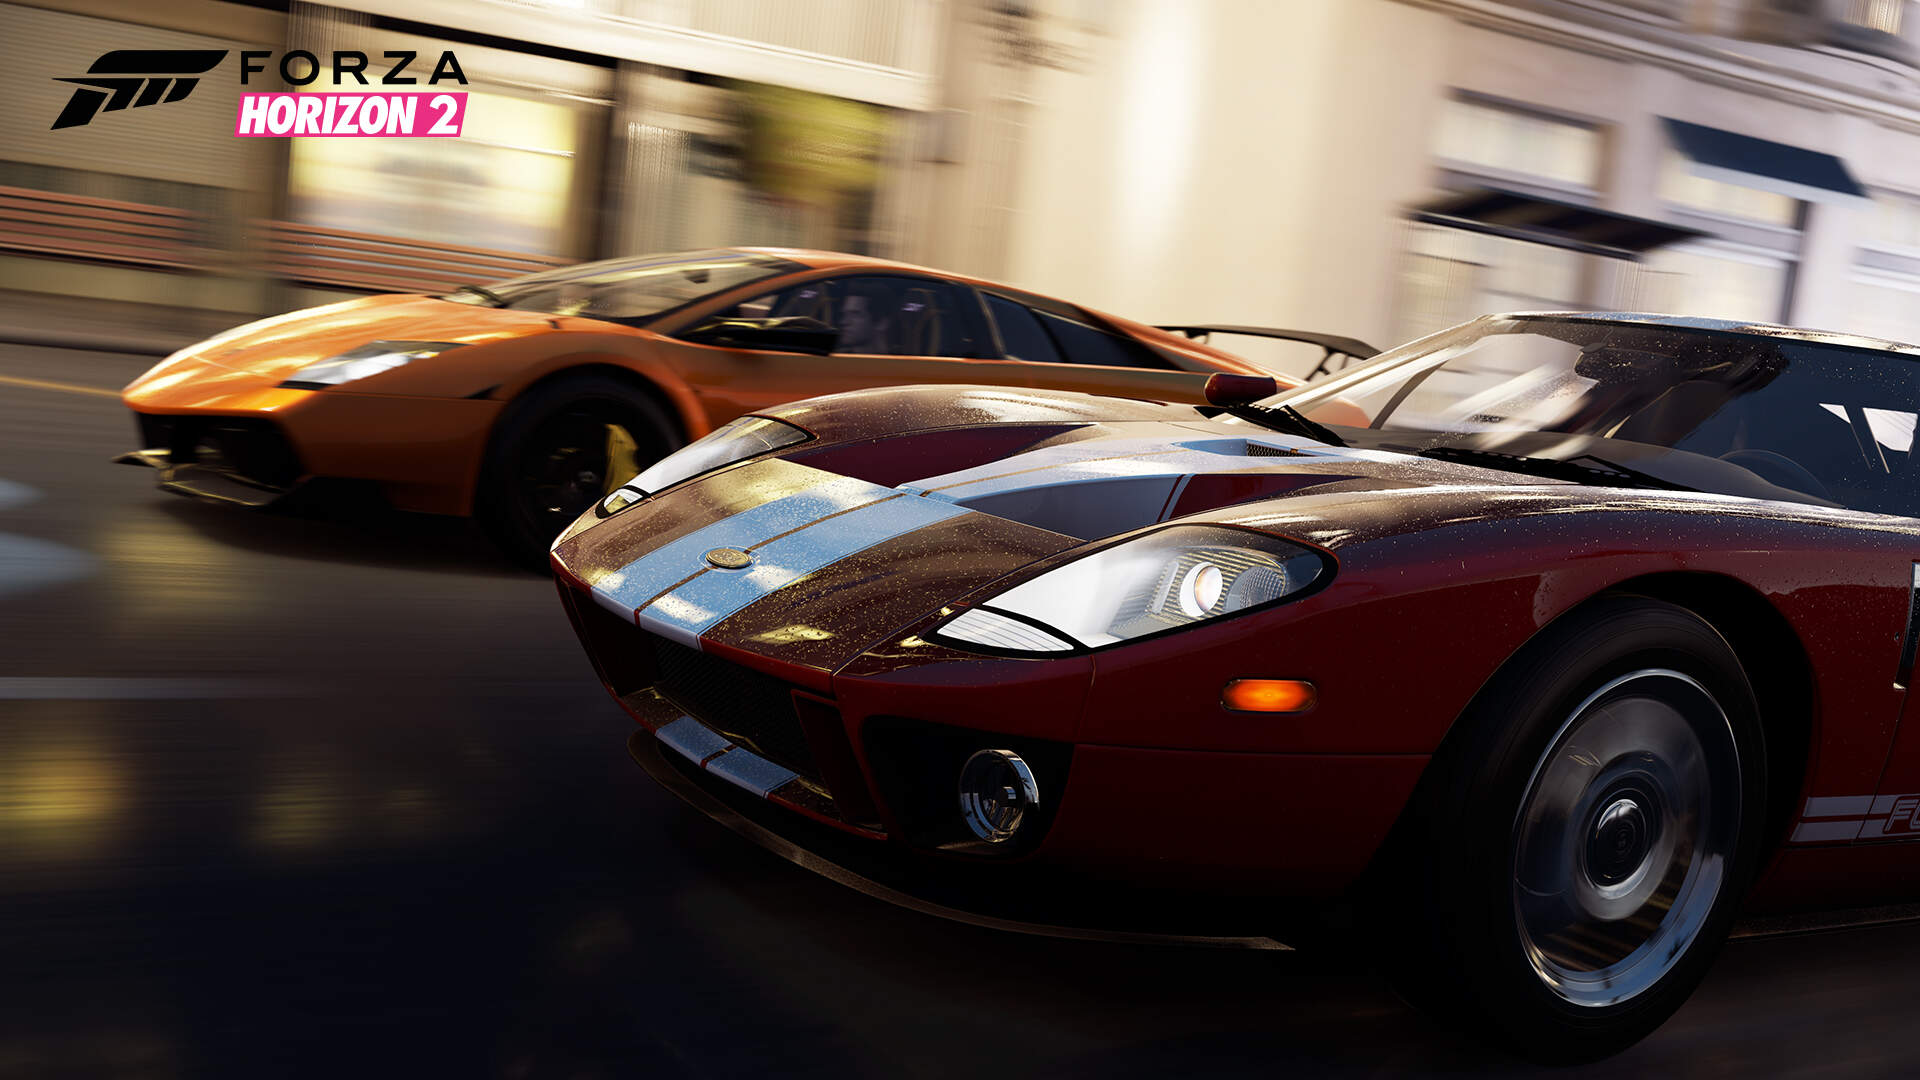 Forza Horizon 2 Driving Guide, Assists Walkthrough, Achievements and Car Lists